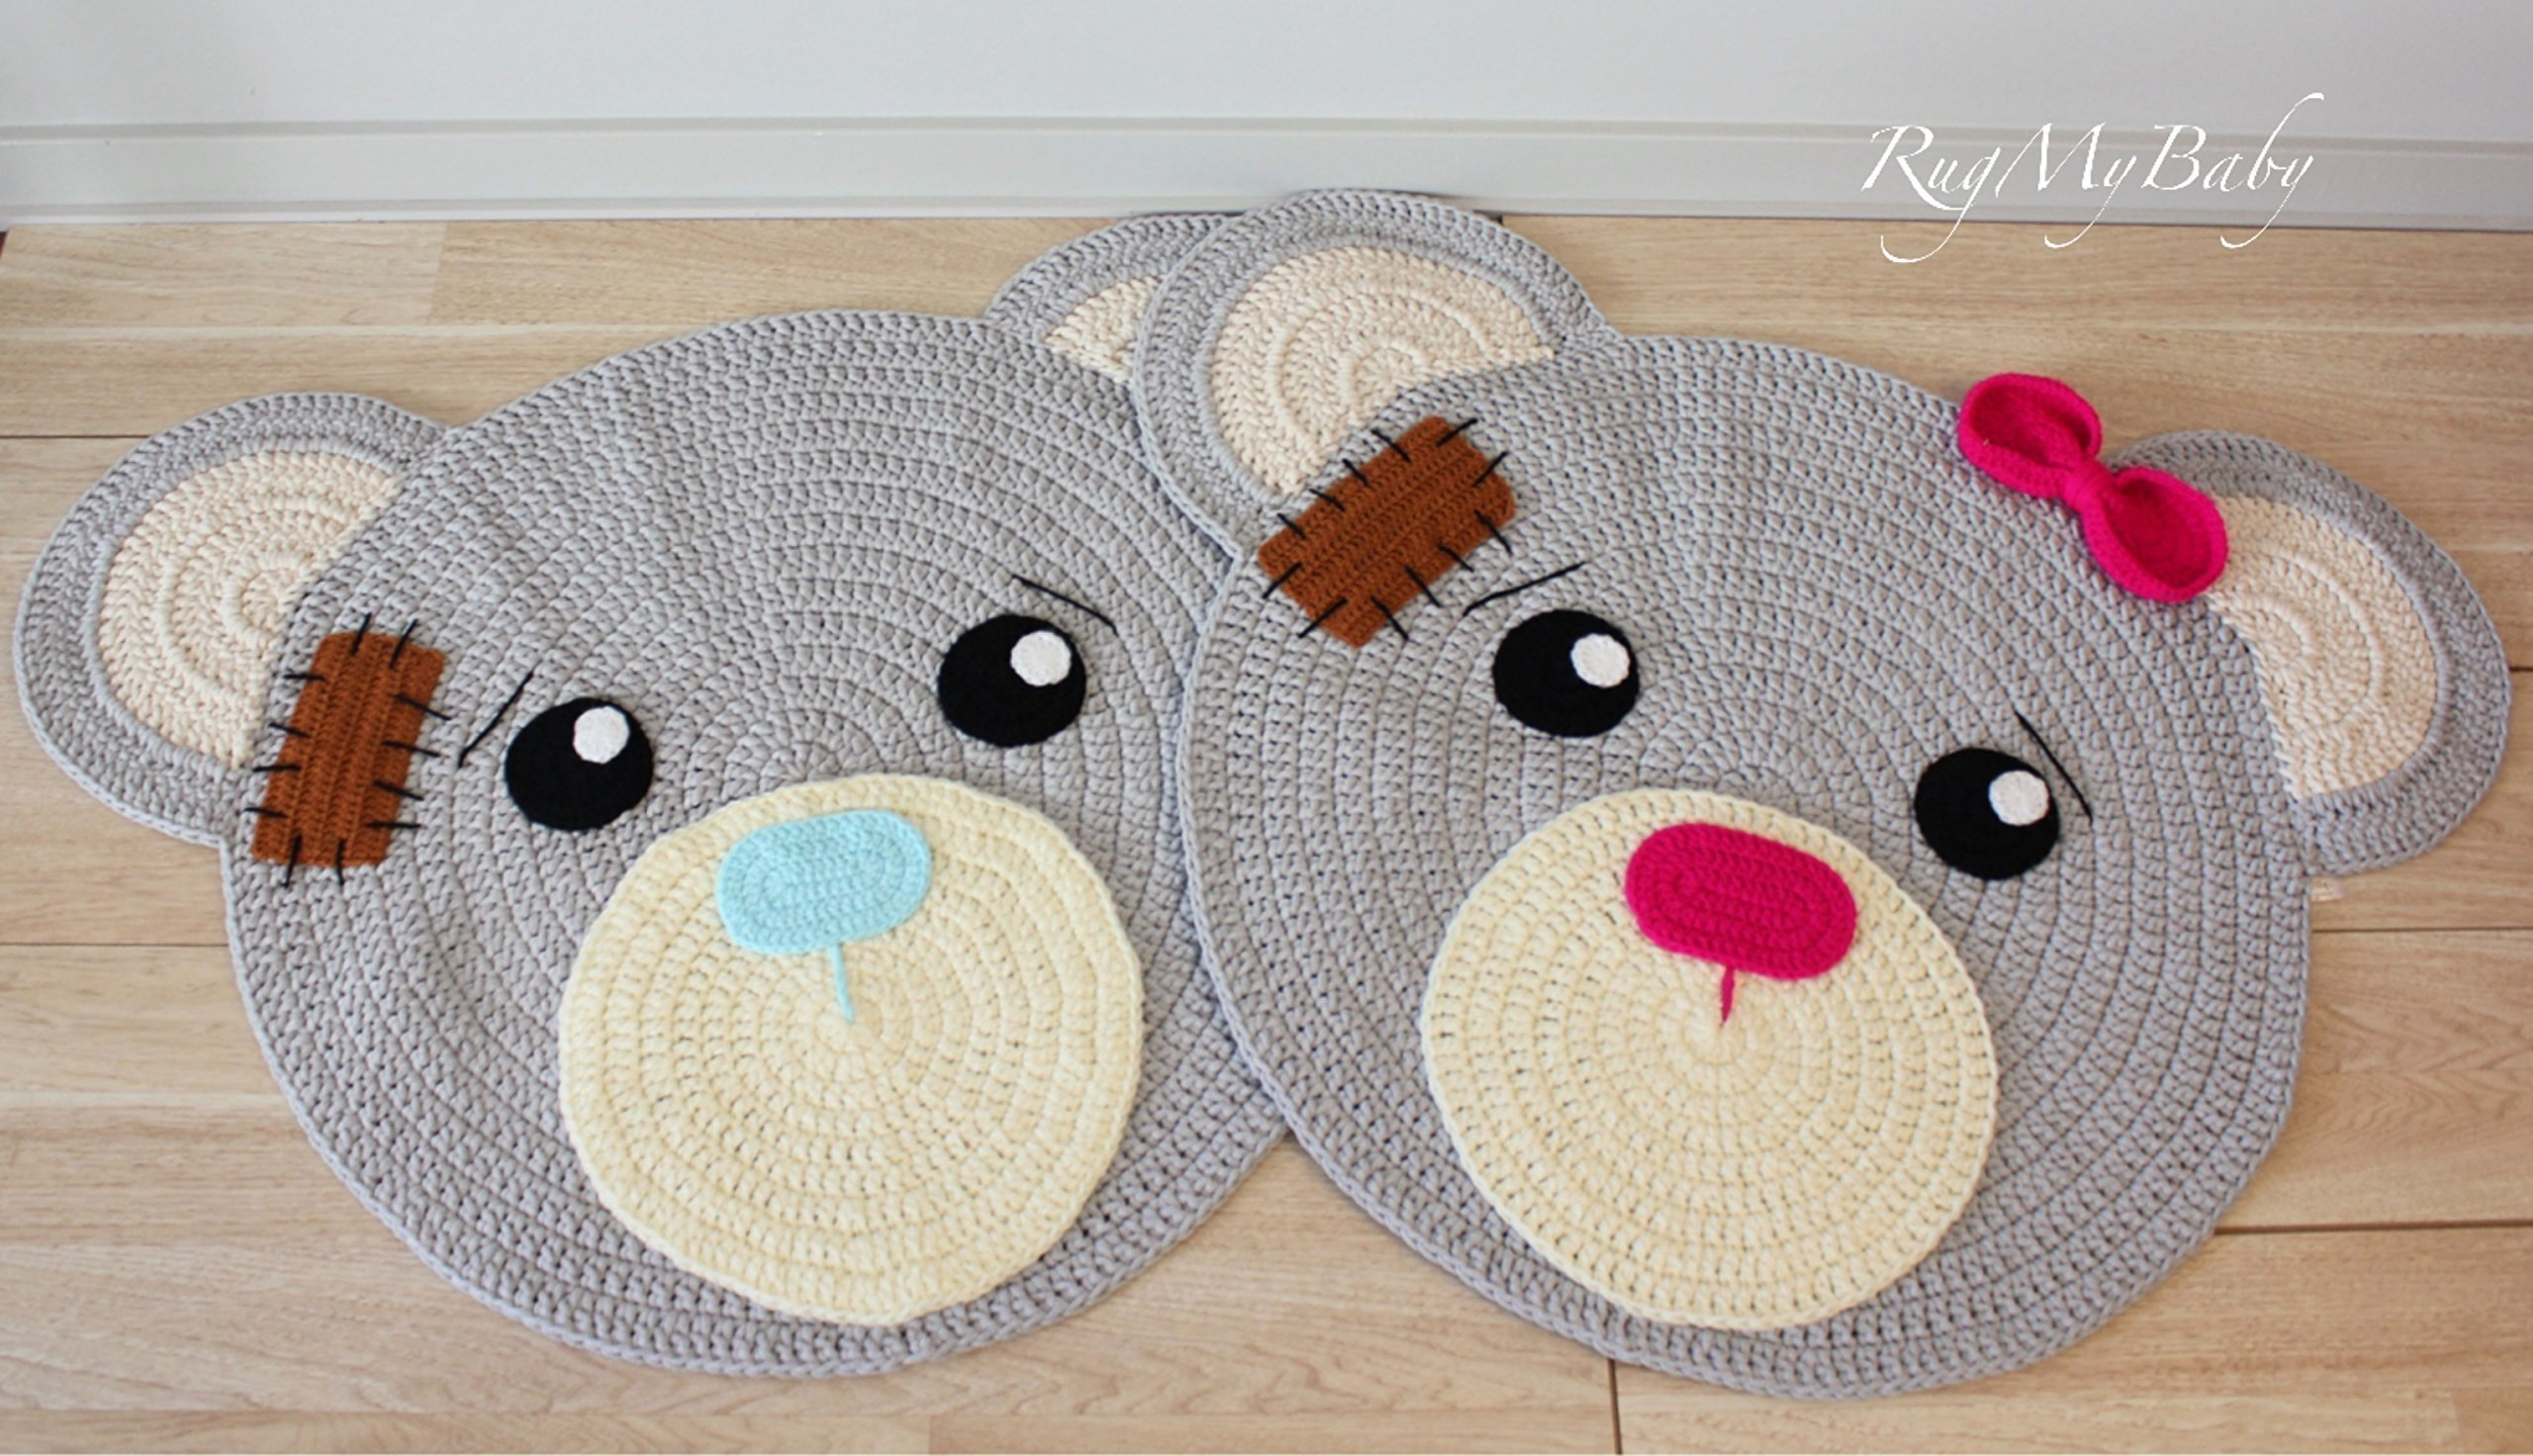 "Round Rugs Baby Rug Nursery Rugs Cute Bear Design Home Decoration Area Rugs Bedroom/Living Room Carpet Mat Baby Crawling Mats Kids Play Mat Machine Washable Rugs (round 31"") shipping CA by RugMyBaby"